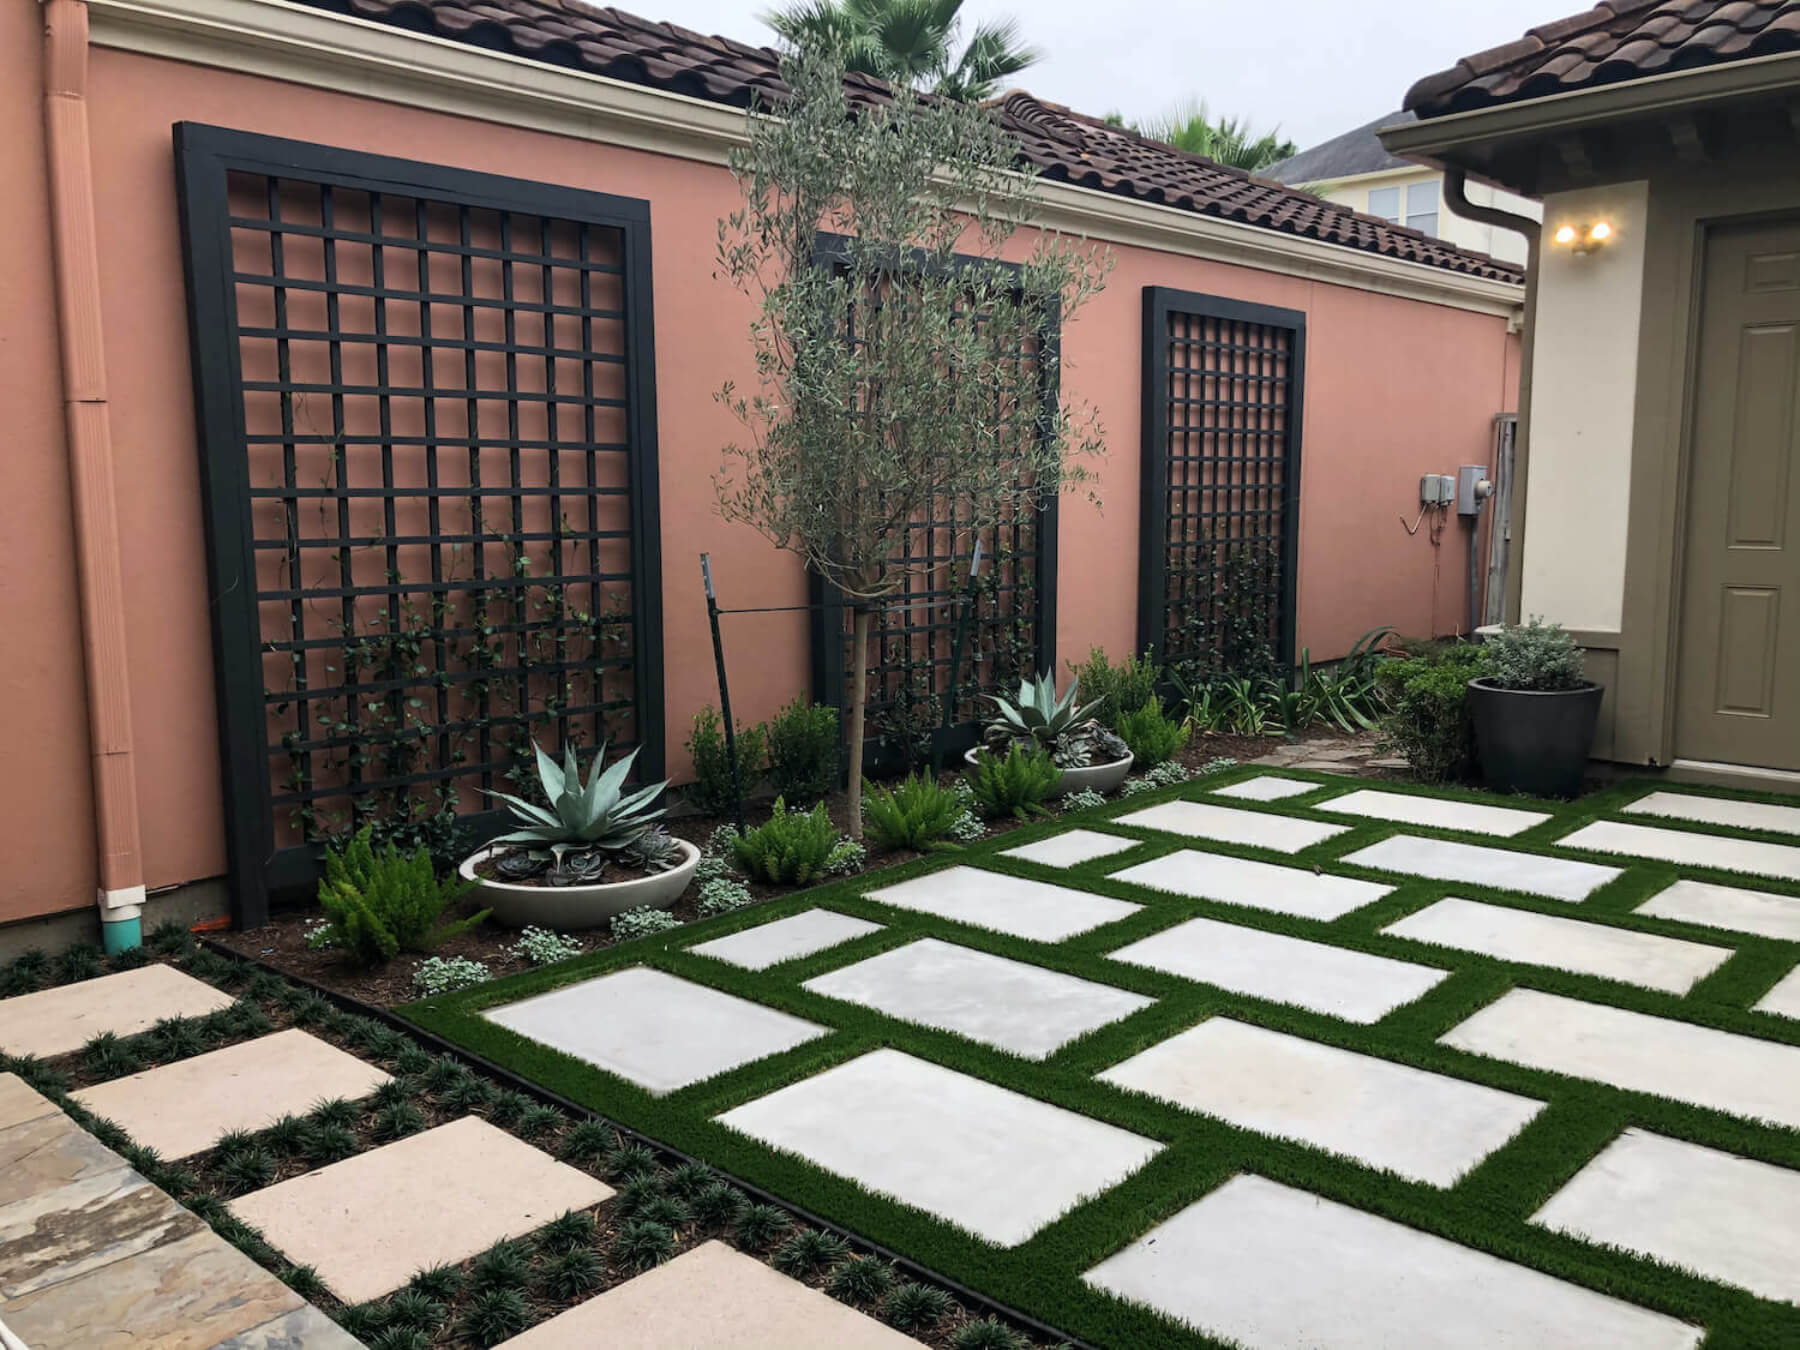 Landscaping Patio Artificial Grass Paver